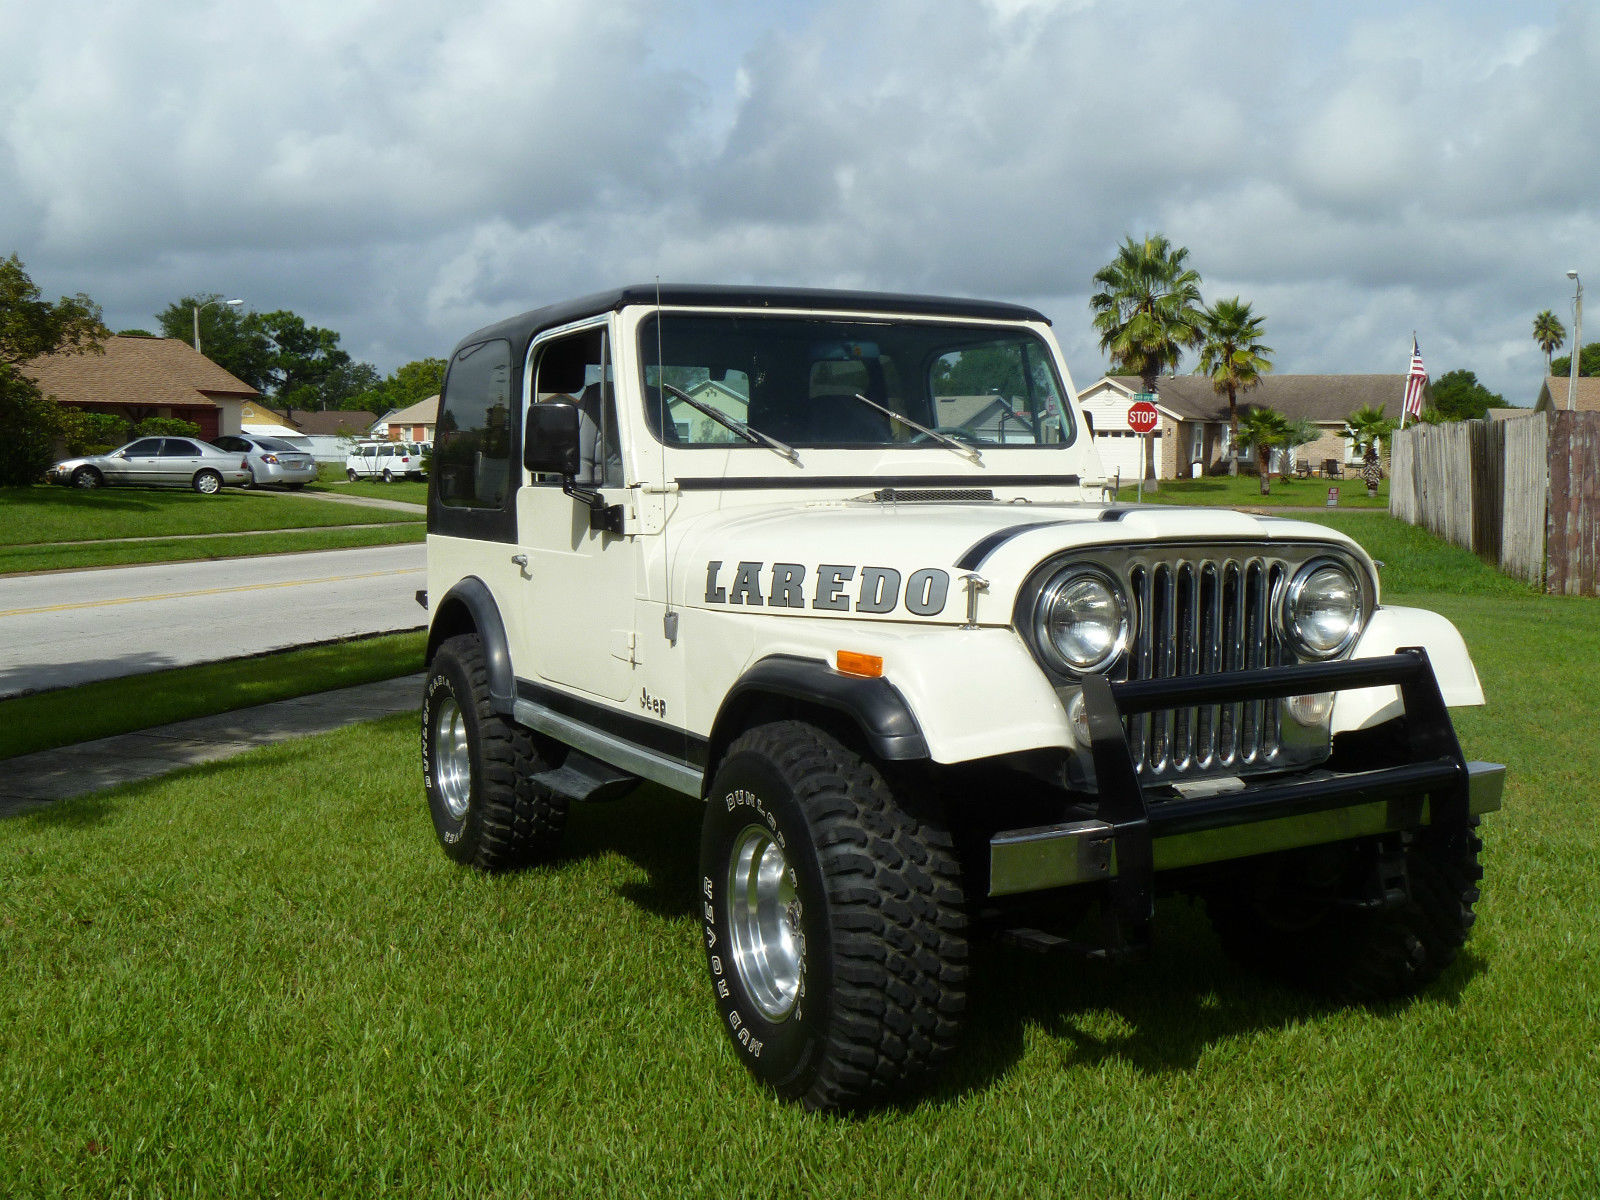 1981 jeep cj7 laredo sport utility 2 door 4 2l classic jeep other 1981 for sale. Black Bedroom Furniture Sets. Home Design Ideas